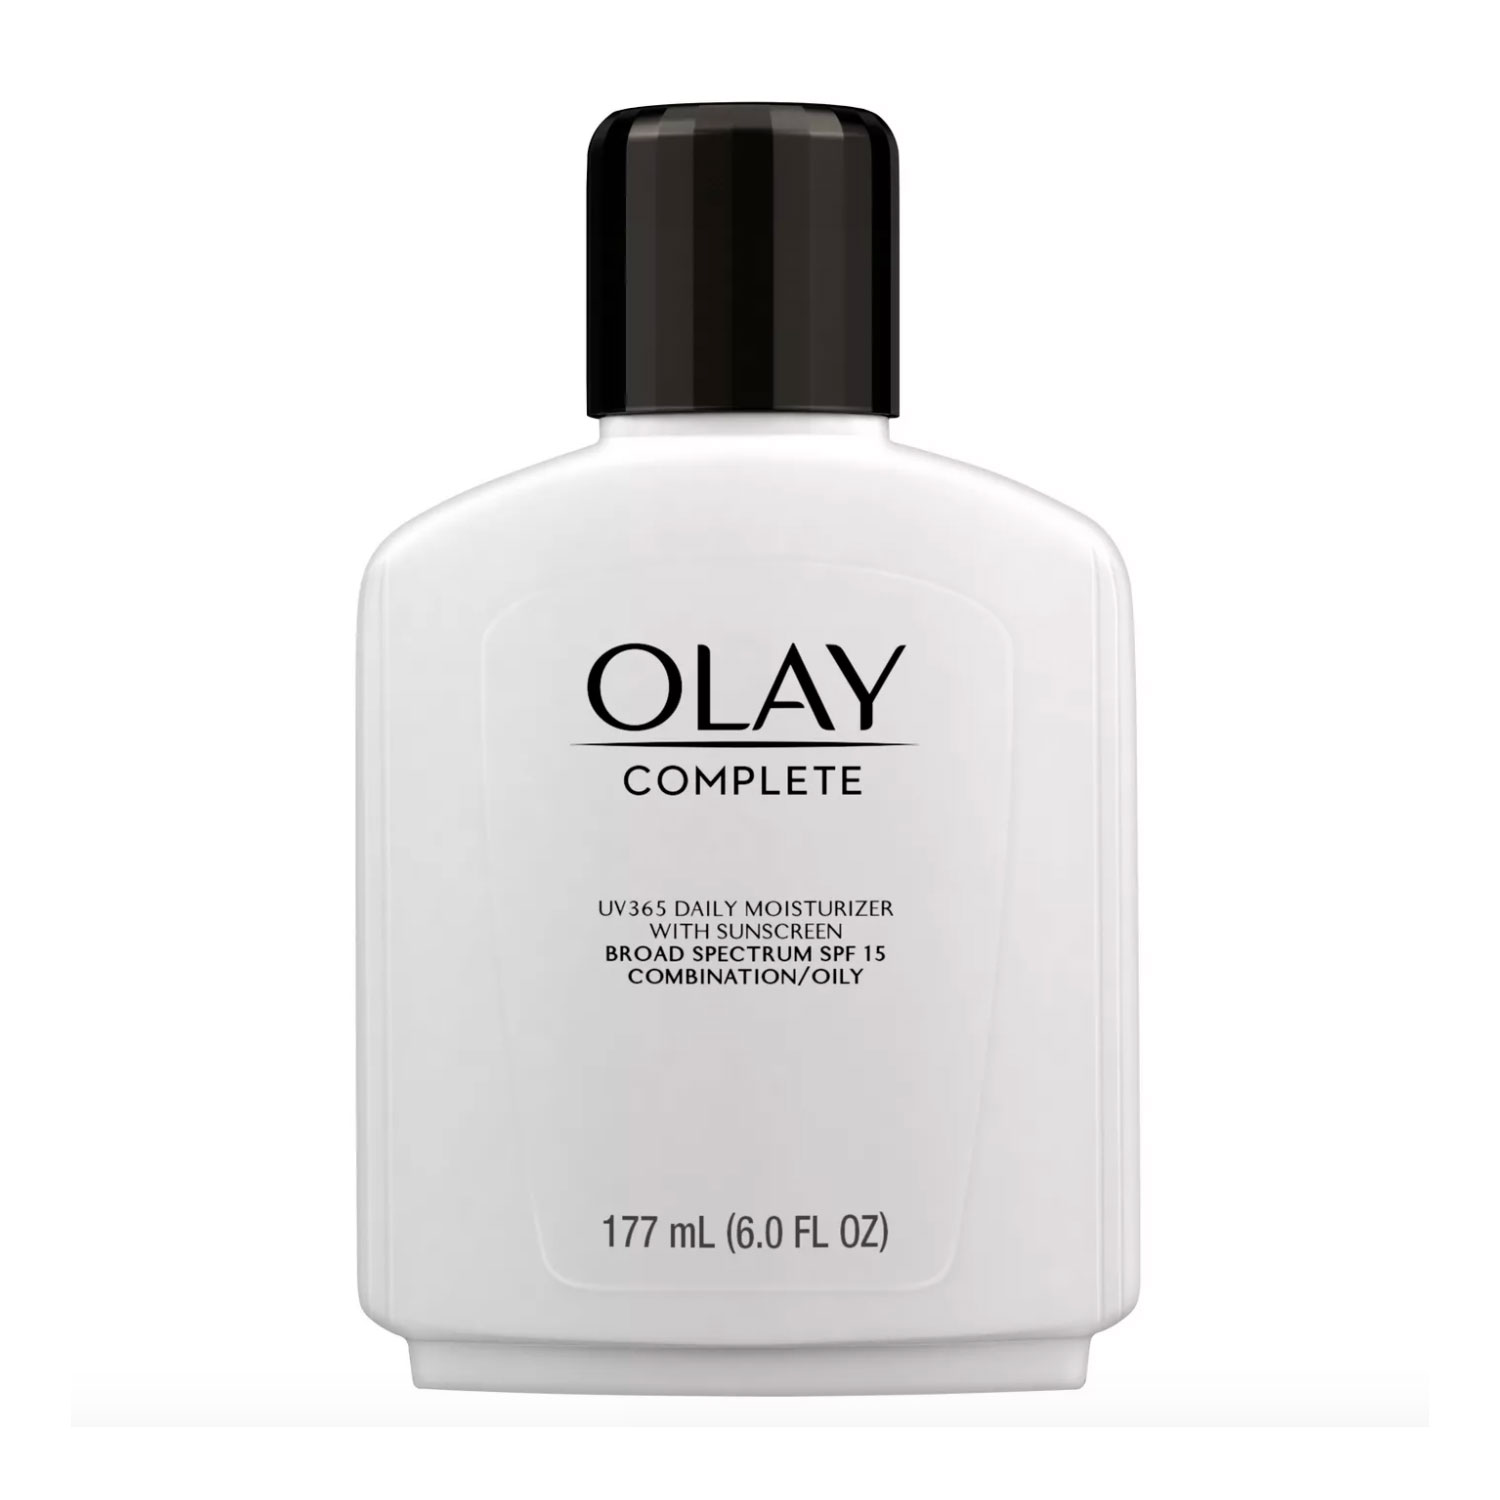 Olay Complete All Day Moisturizer with SPF 15 – Combination/Oily